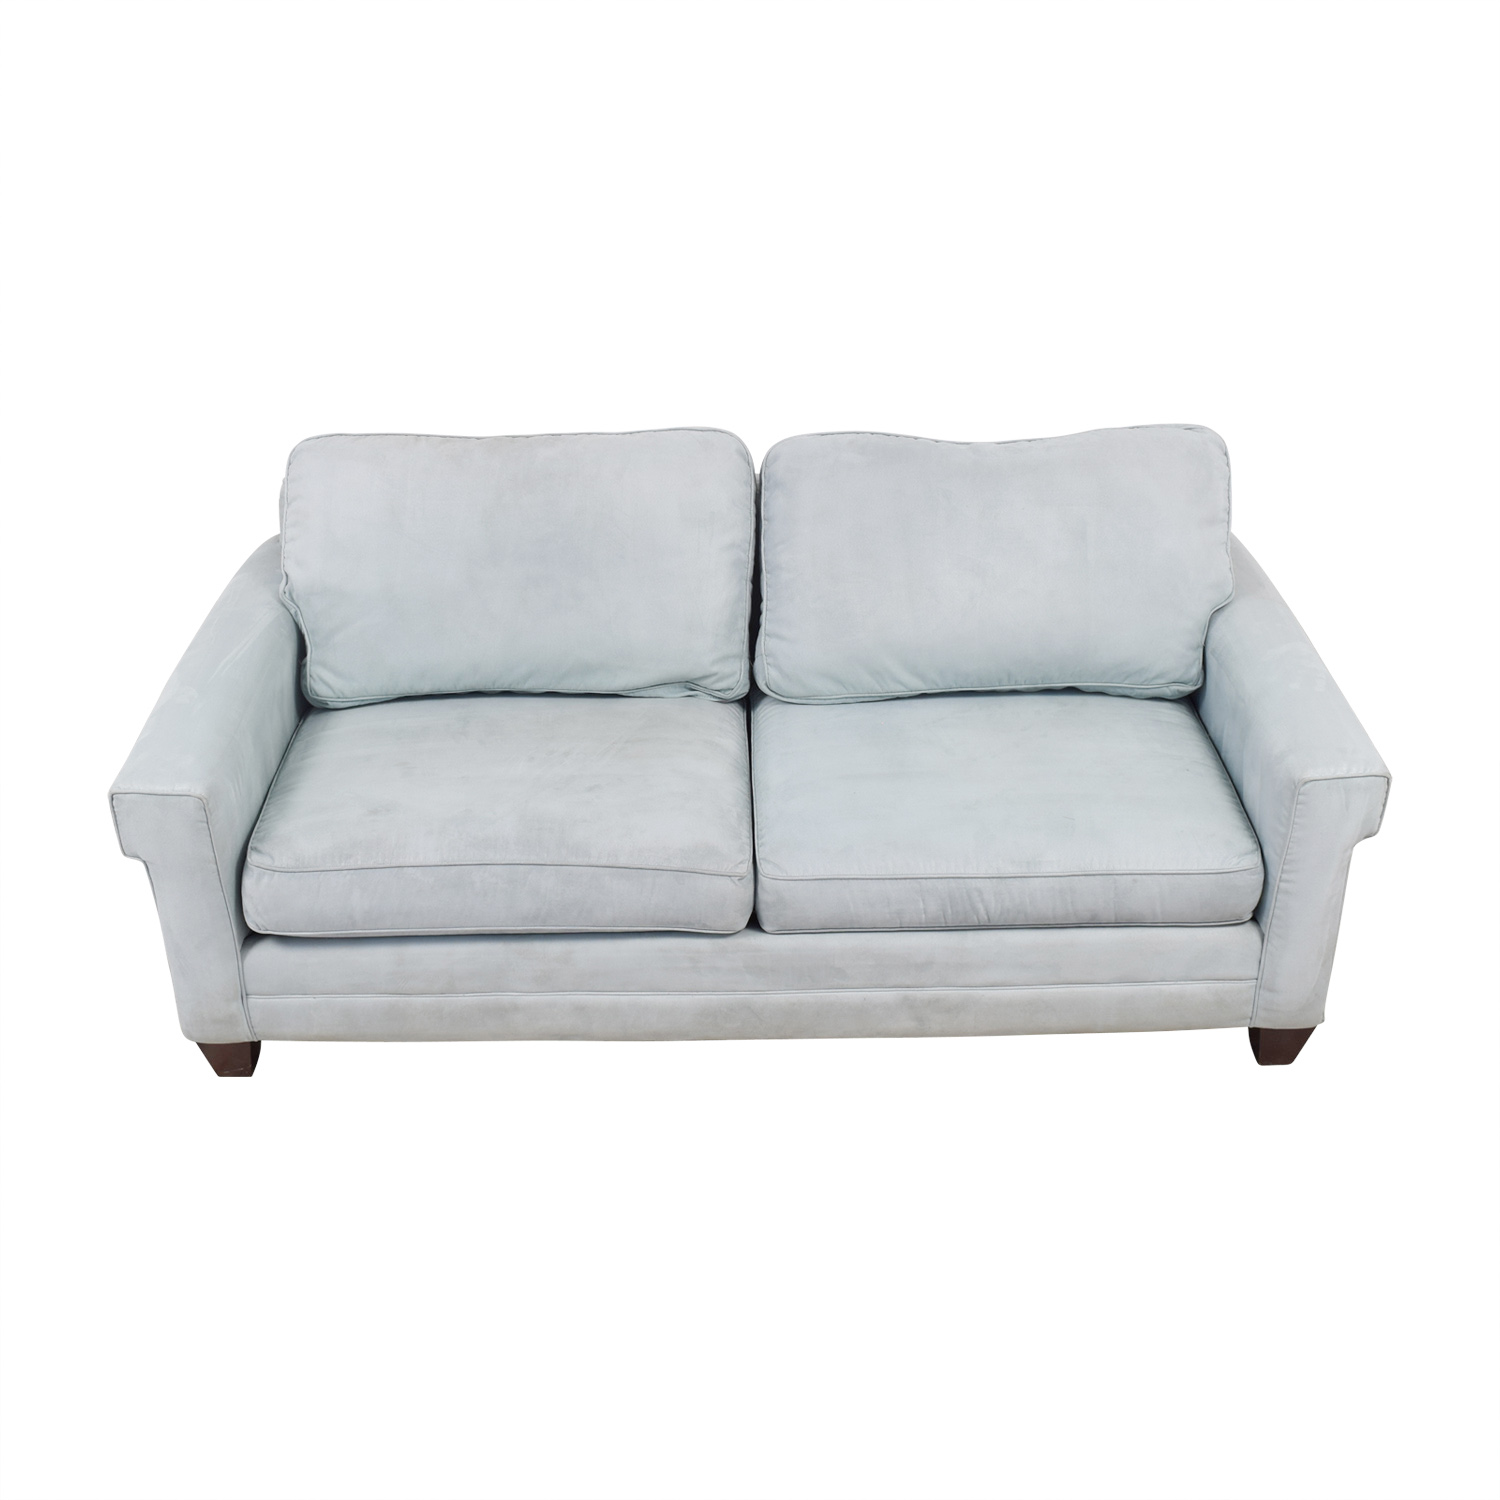 Bassett Bassett Light Blue Micro Fiber Two Cushion Couch Dimensions